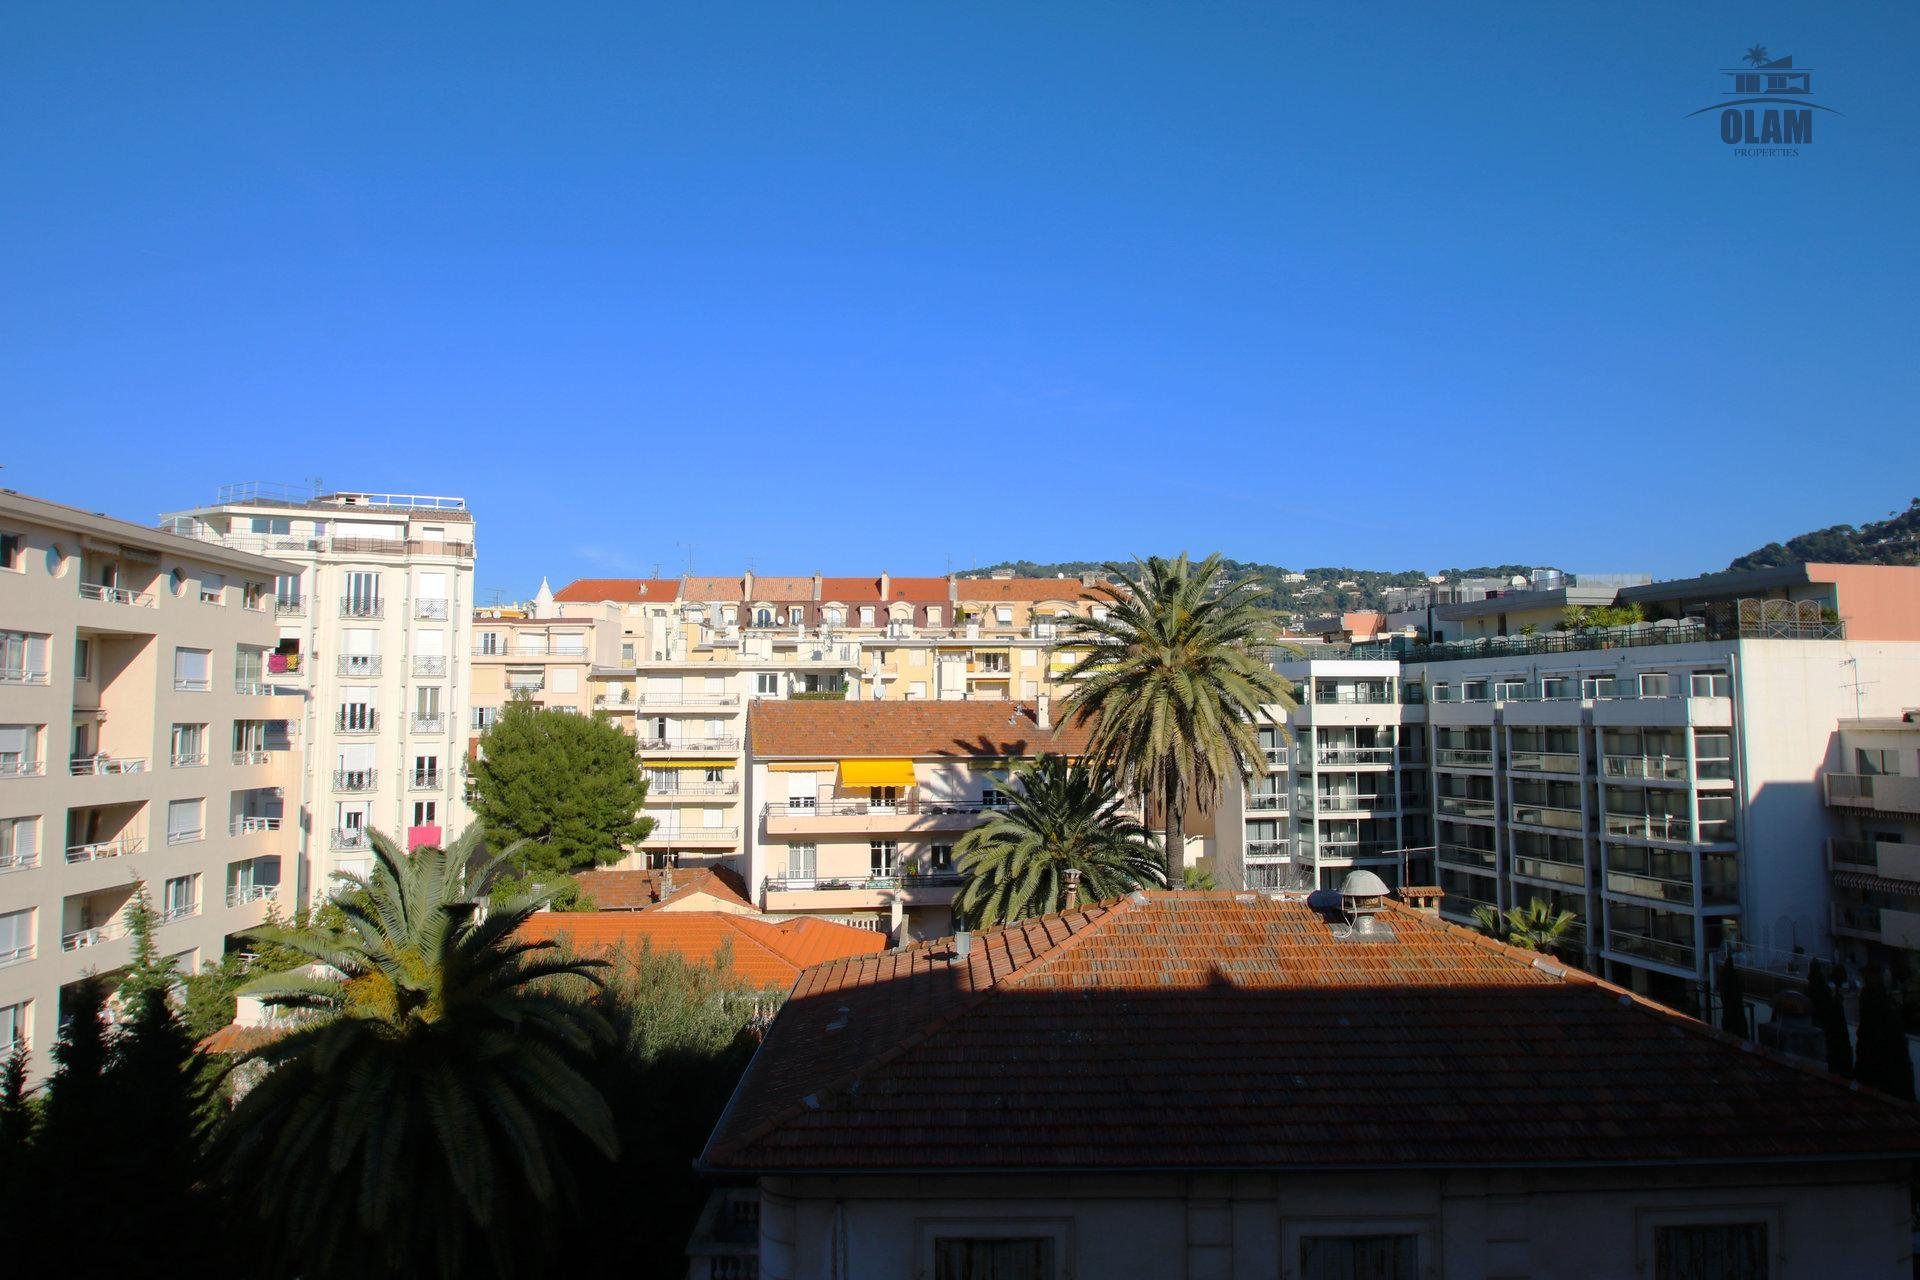 Street view, Cannes, French Riviera, Croisette